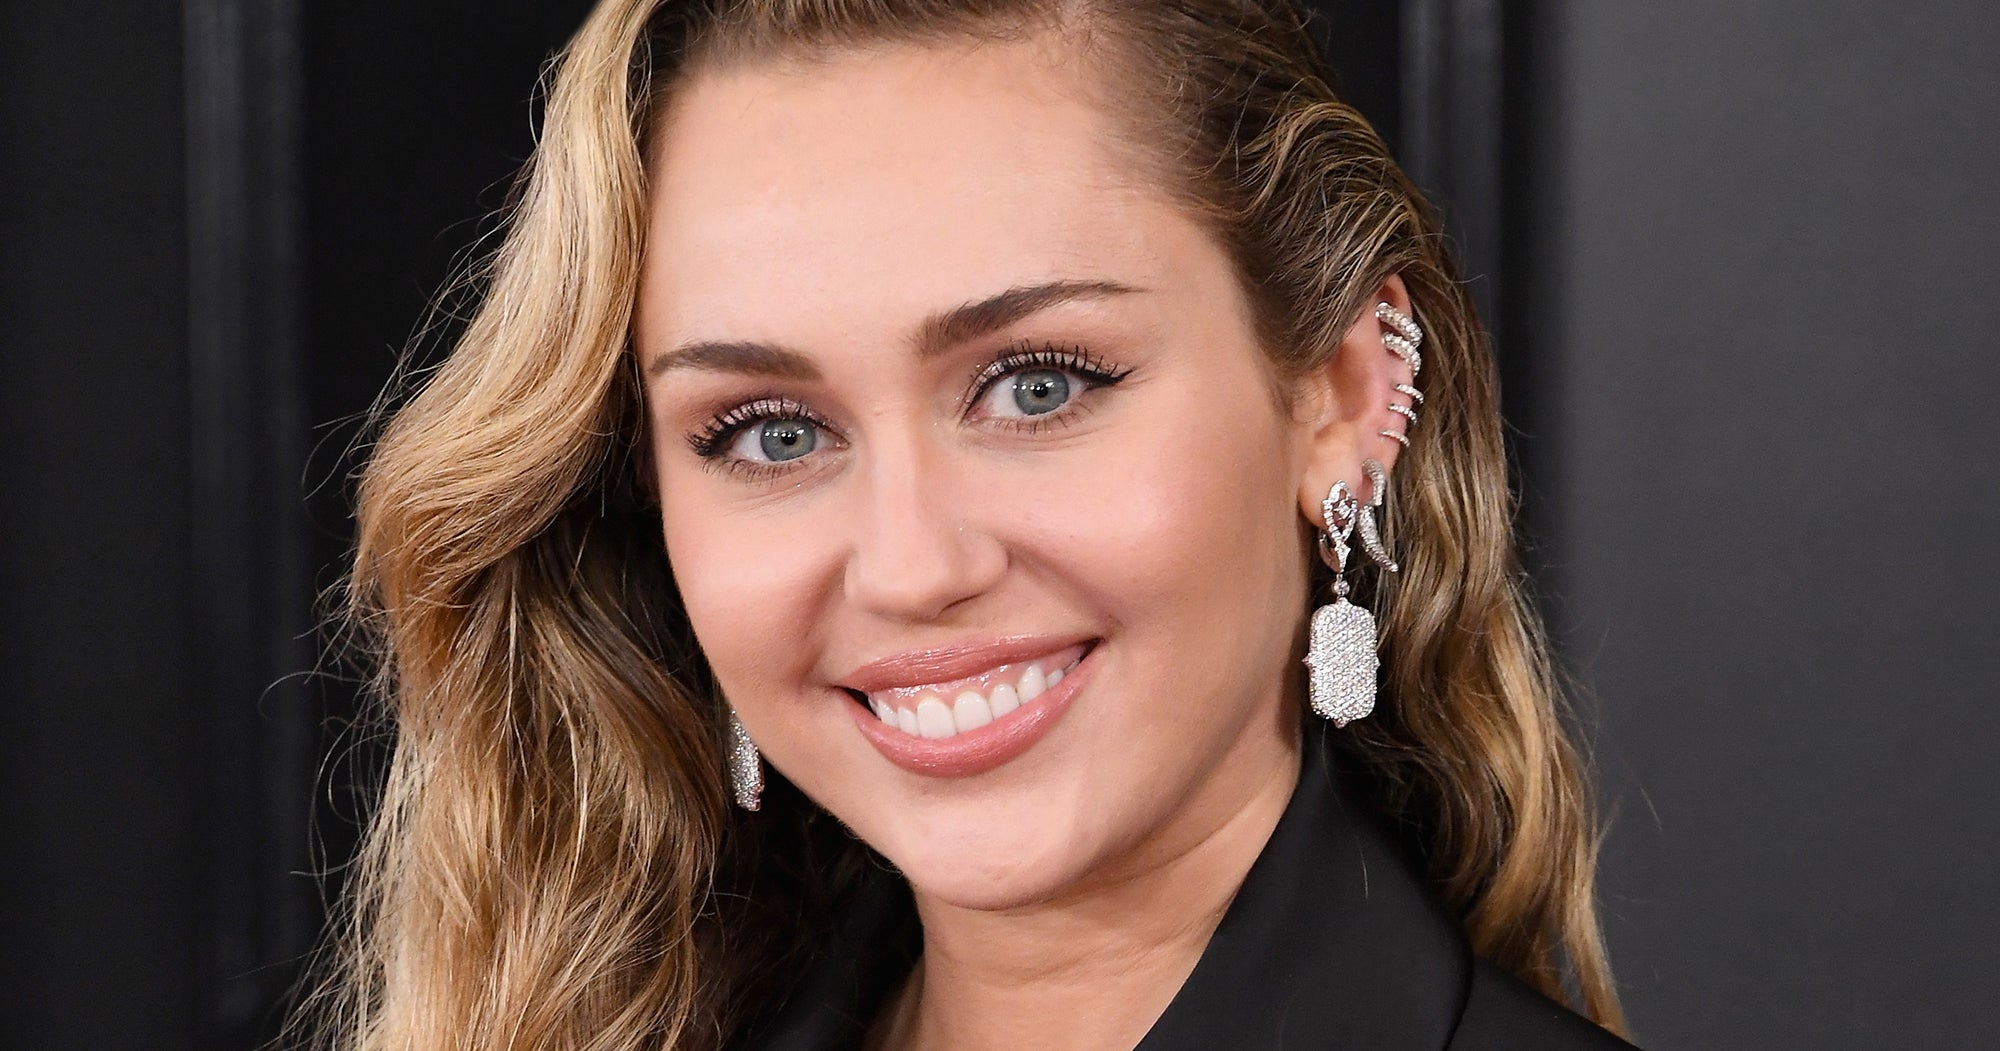 """Miley Cyrus Gets A """"Mullet Pixie"""" Haircut From Her Mom At Home"""